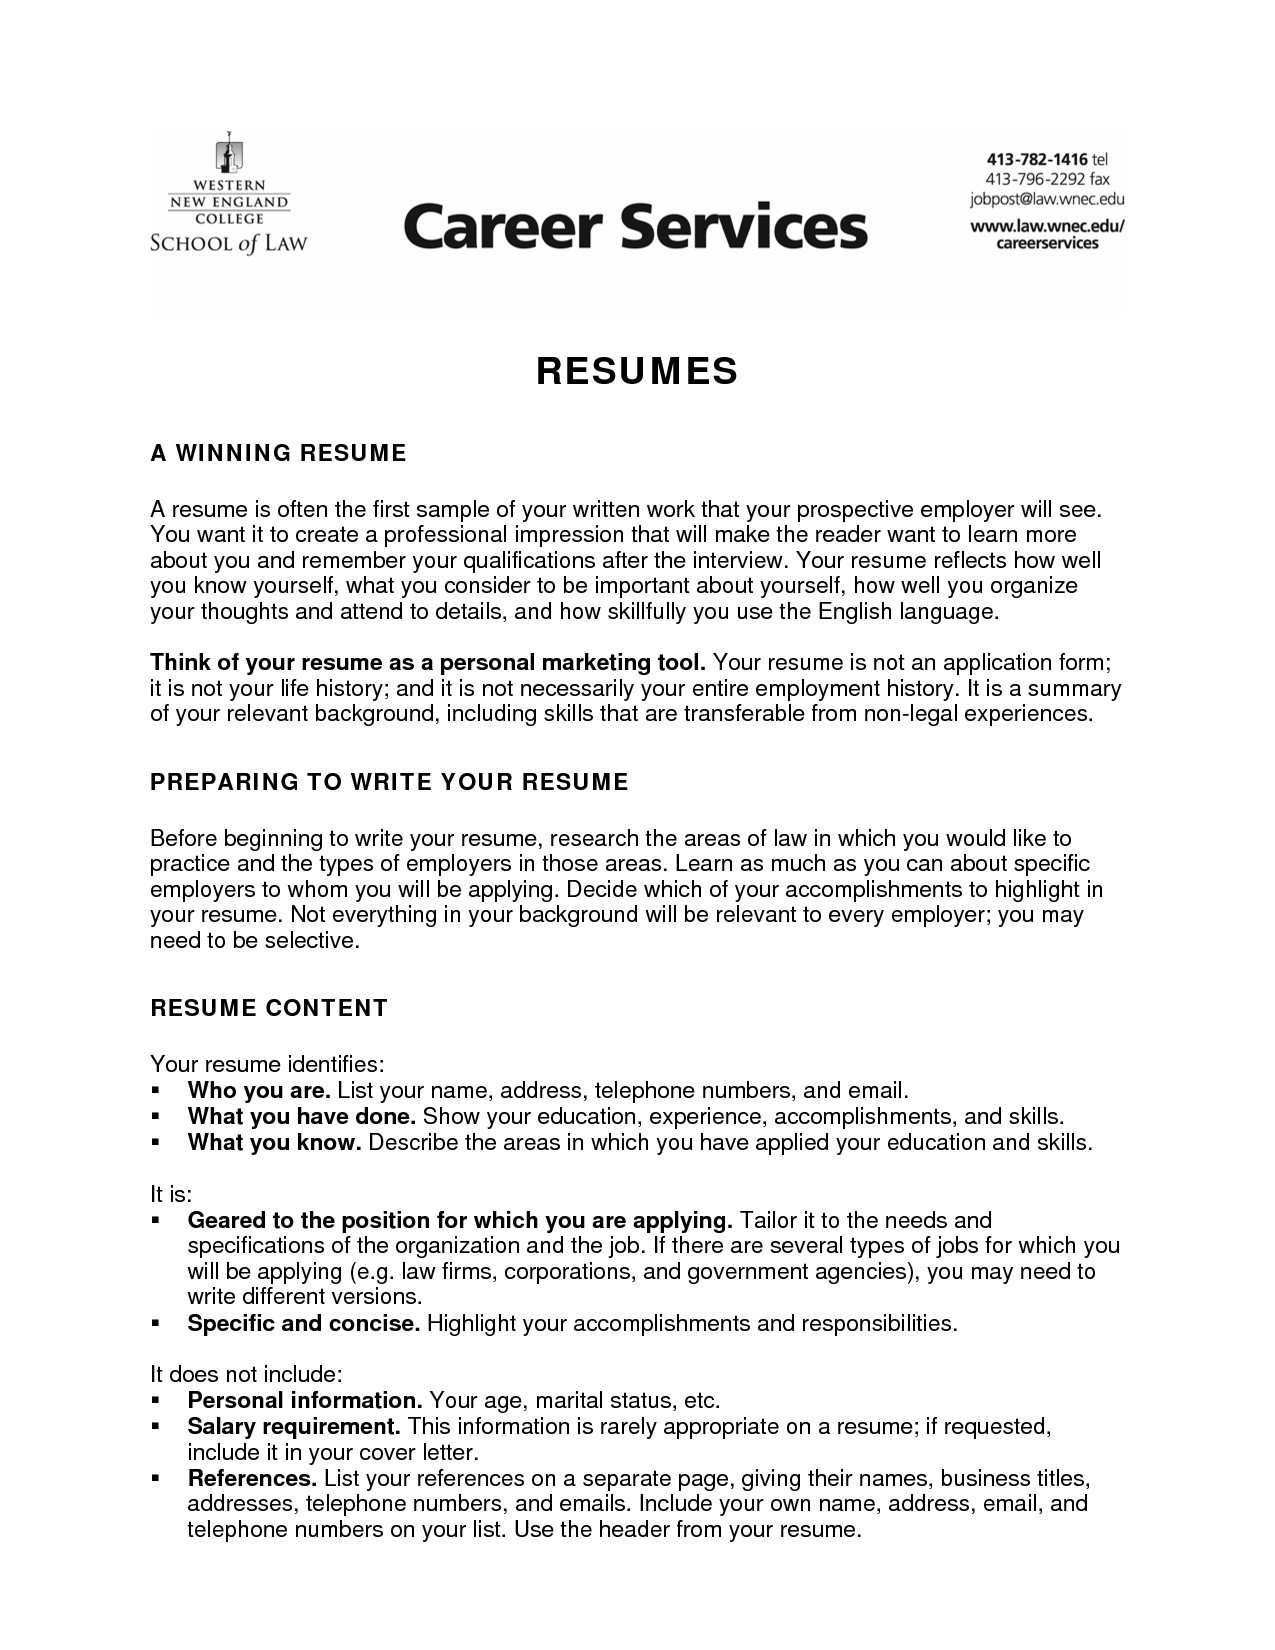 Post Resume Online - Create Resume Line New Cv Maker Manqal Hellenes Screepics